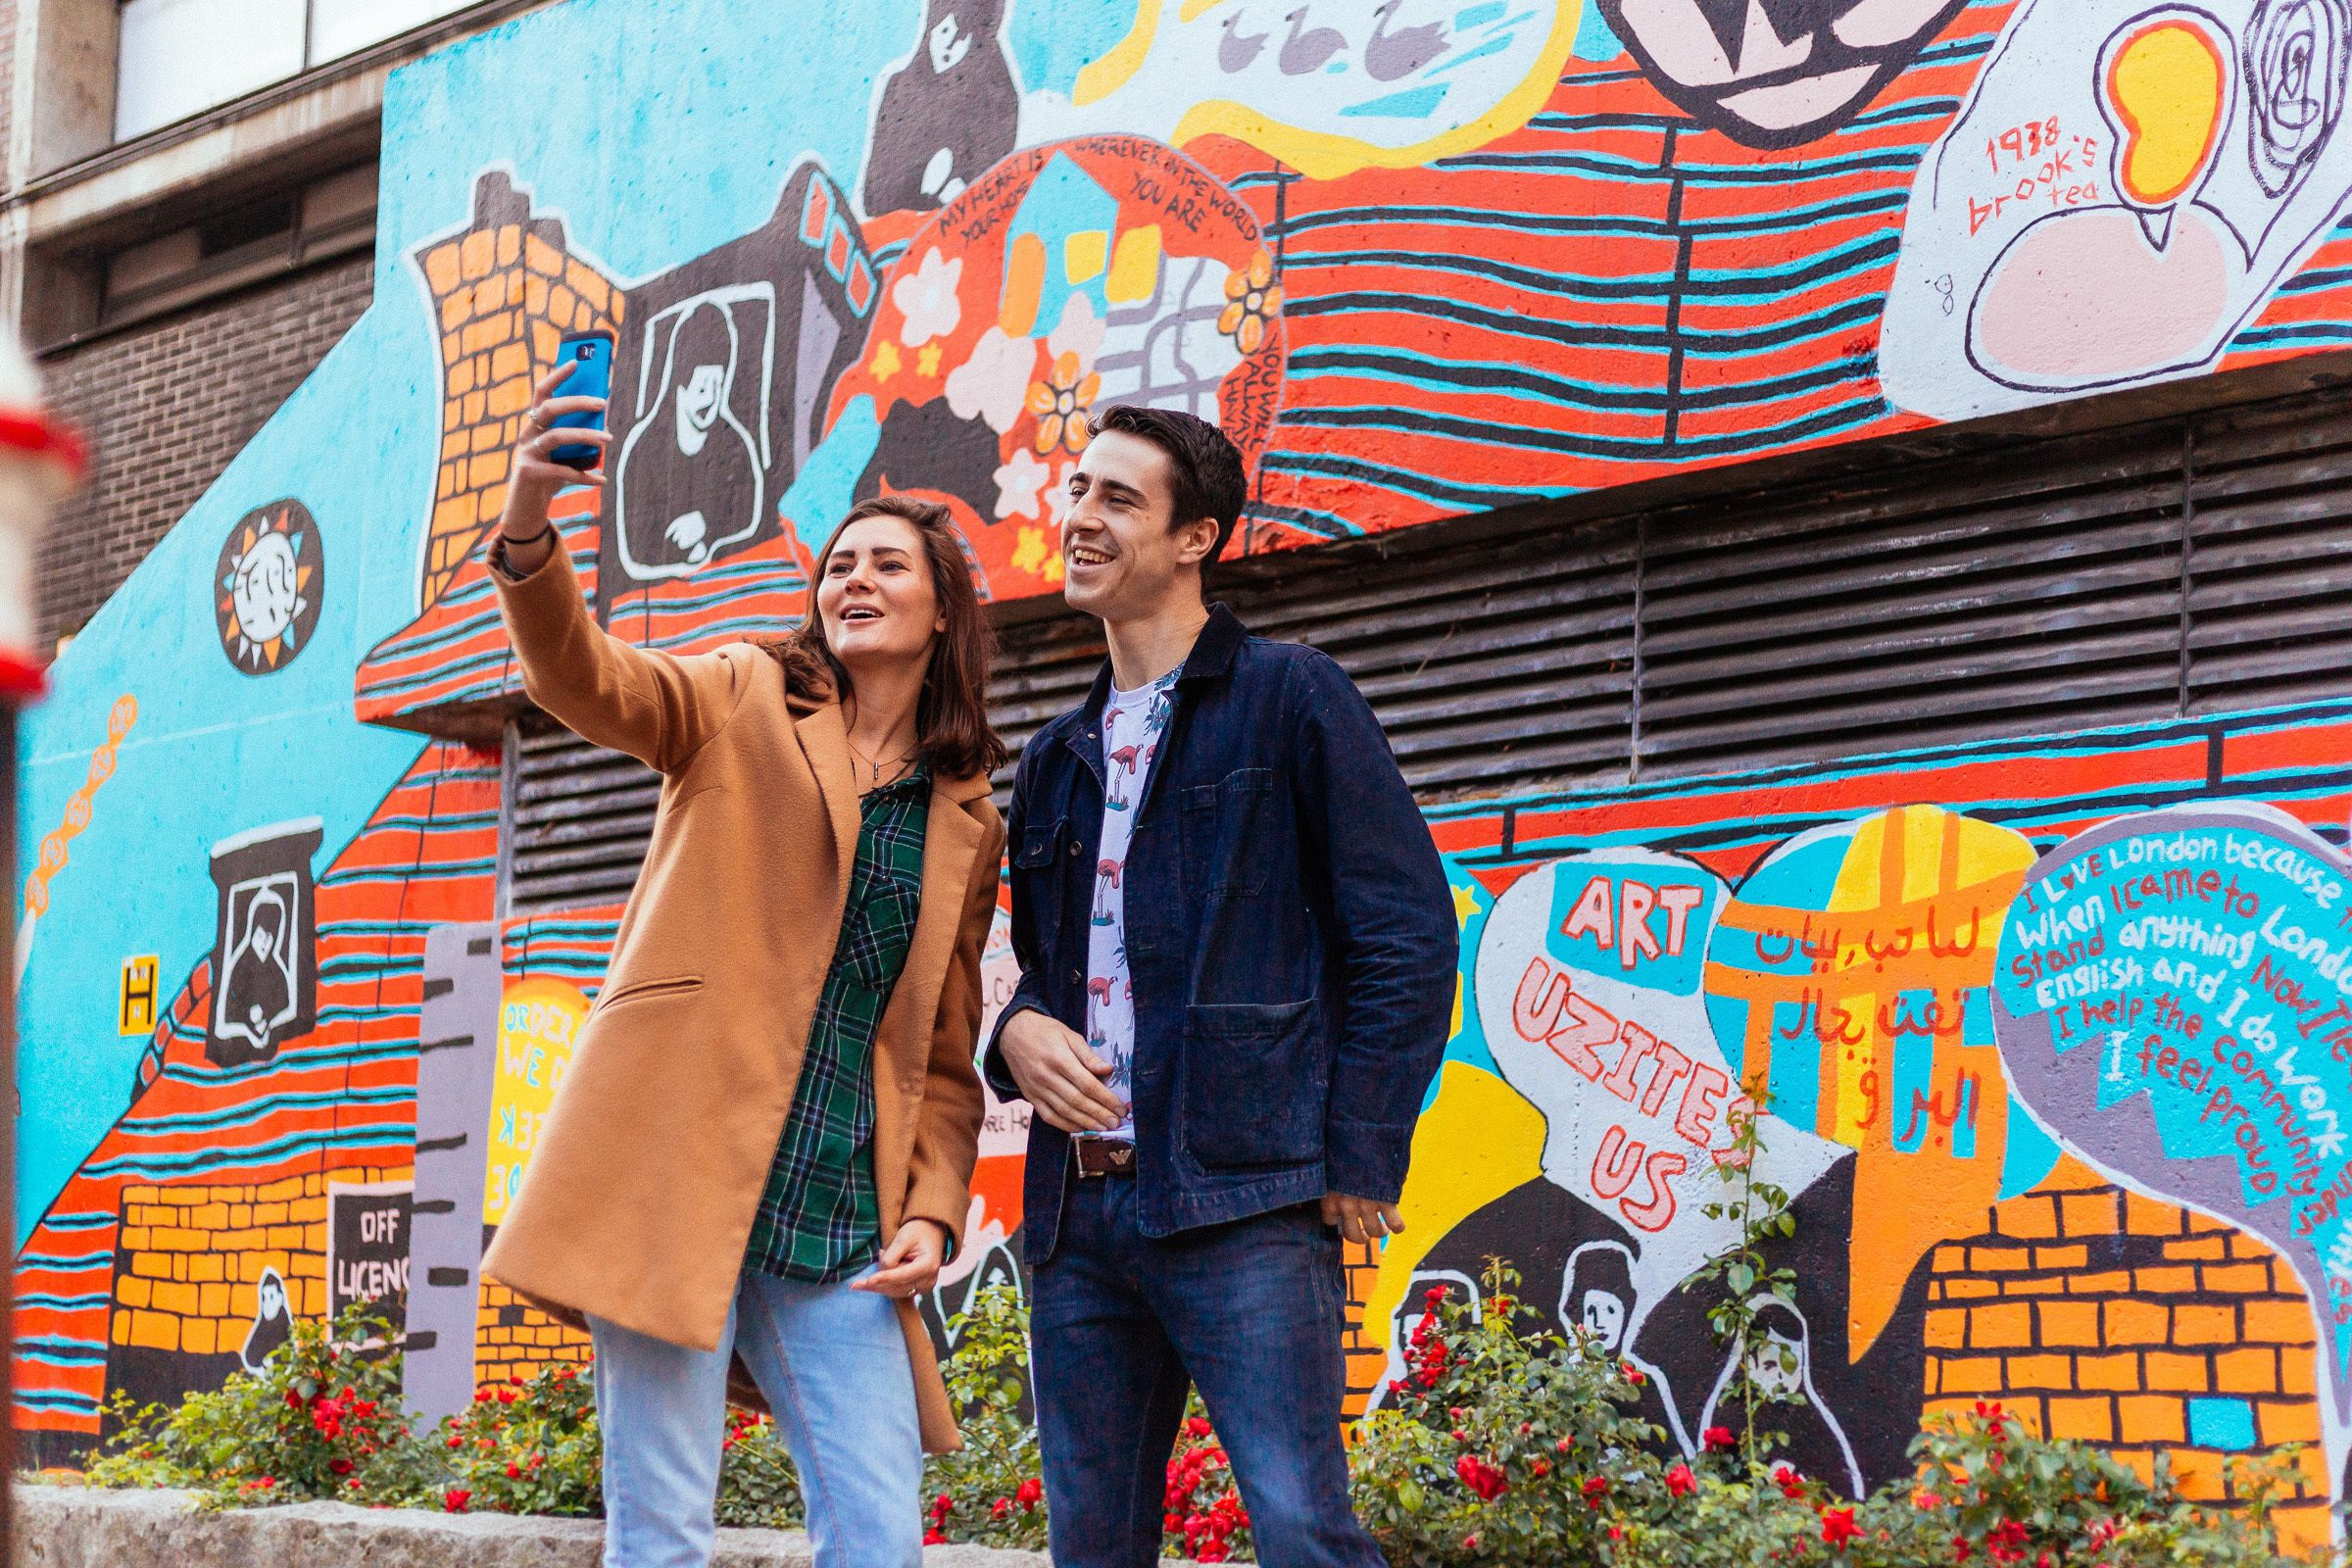 Couple takes a selfie in the Urban Jungle of London